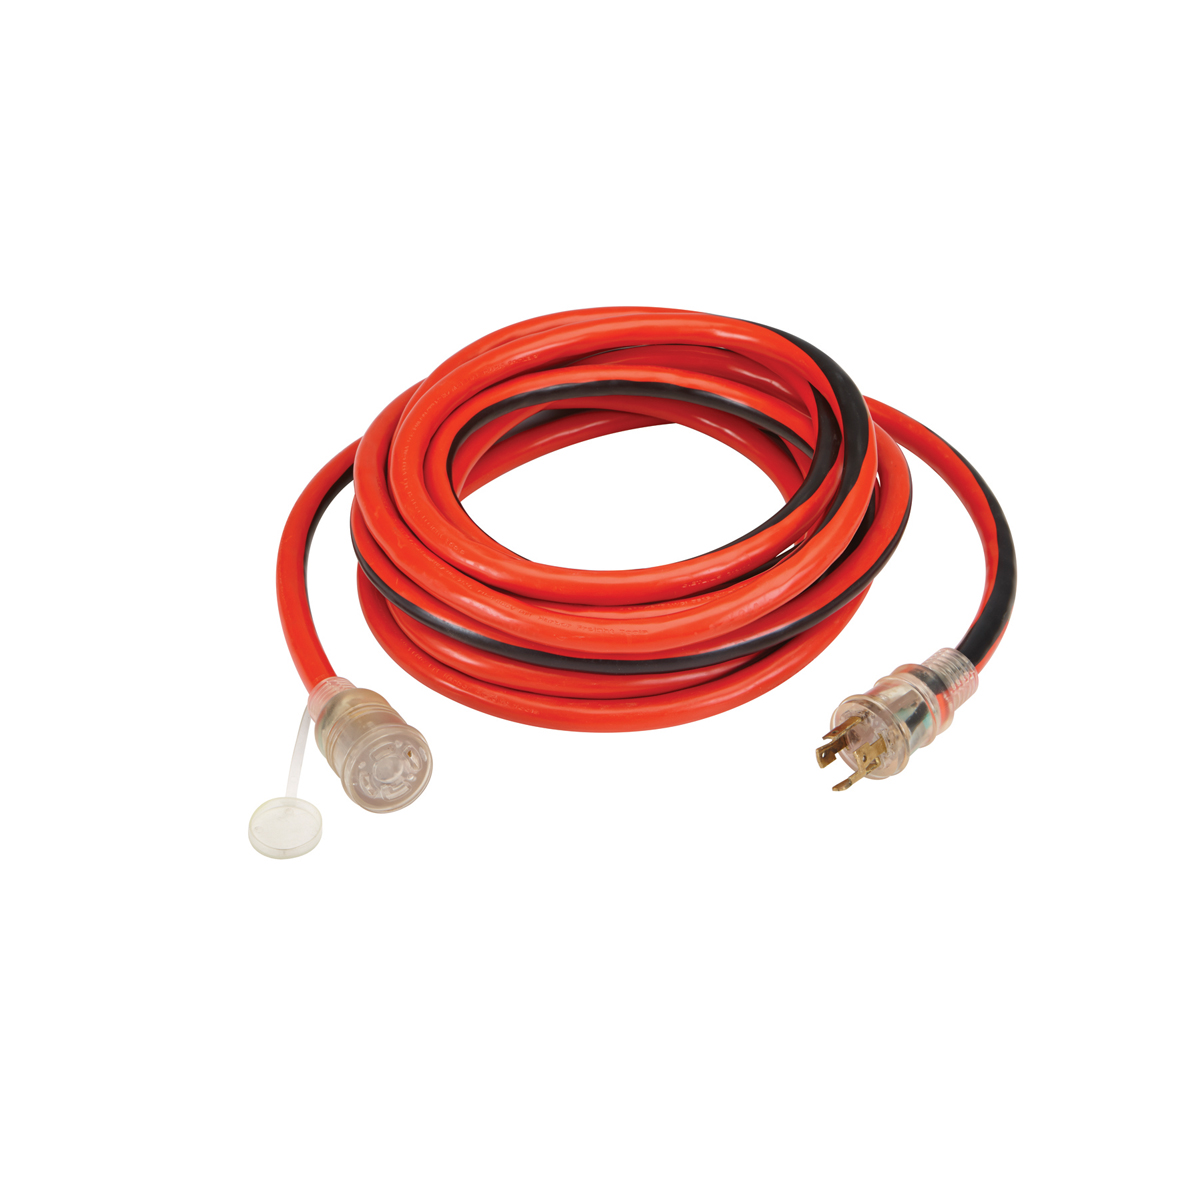 25 Ft X 10 Gauge Generator Duty Twist Lock Extension Cord Split Ether Cable Together With Patch Panel Wiring Also Manual Sobre